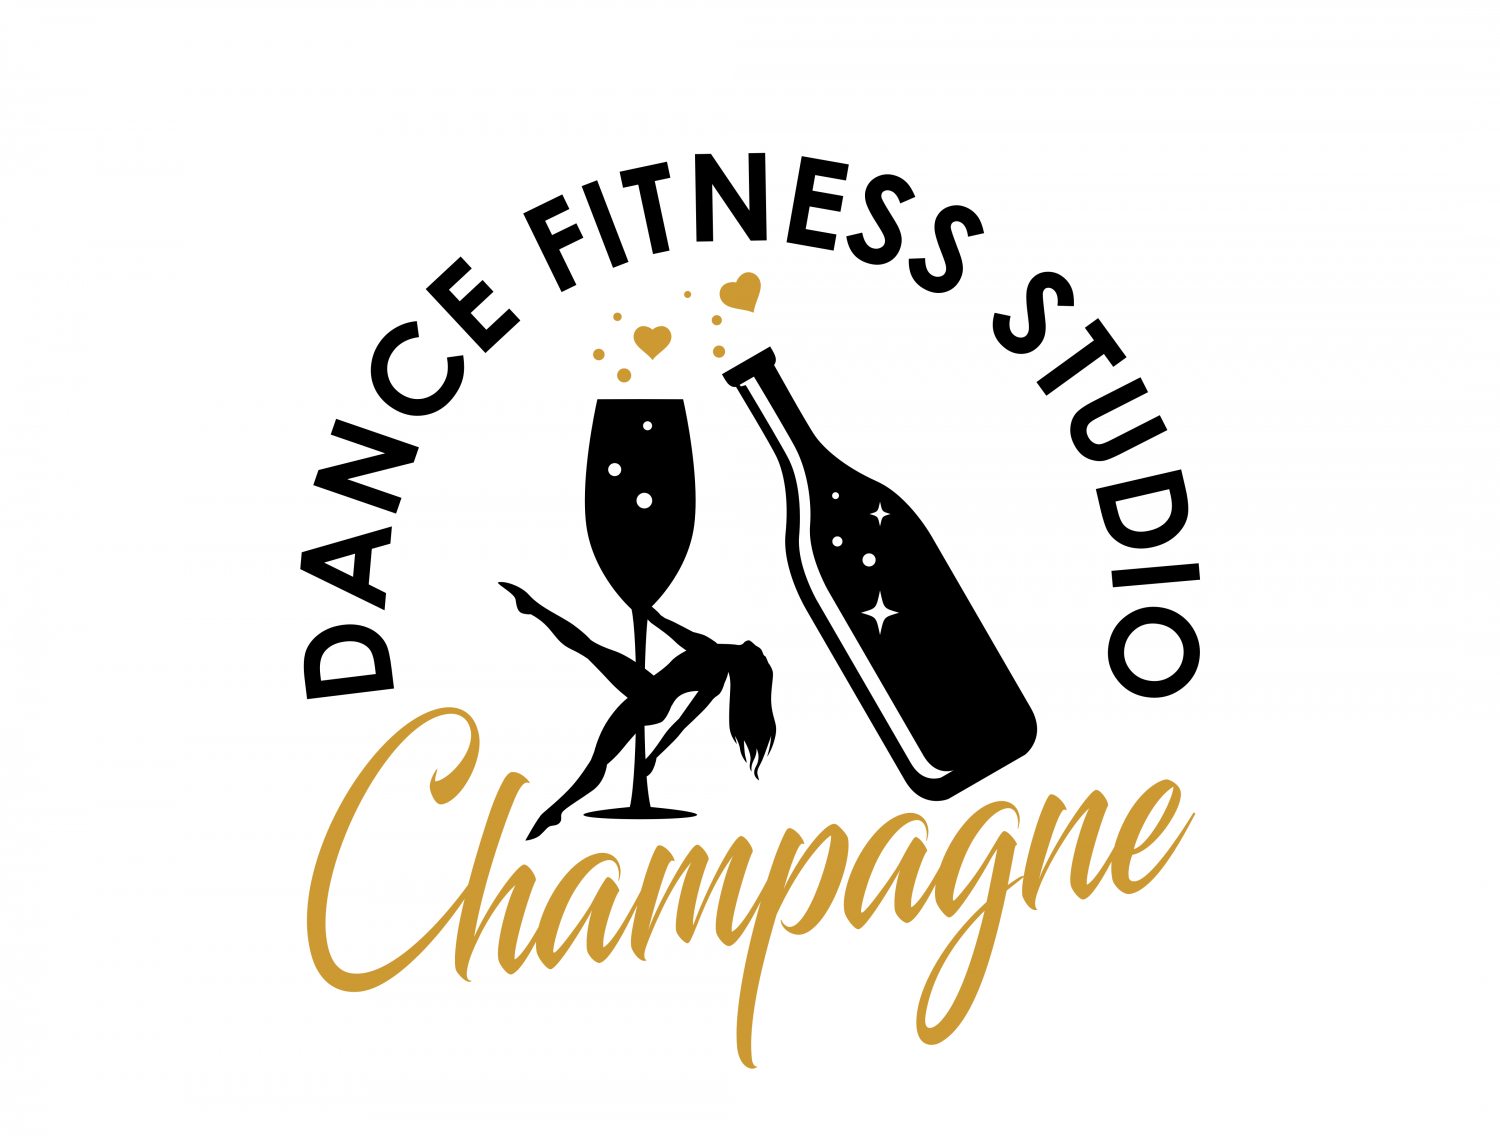 Champagne Pole Dance Studio